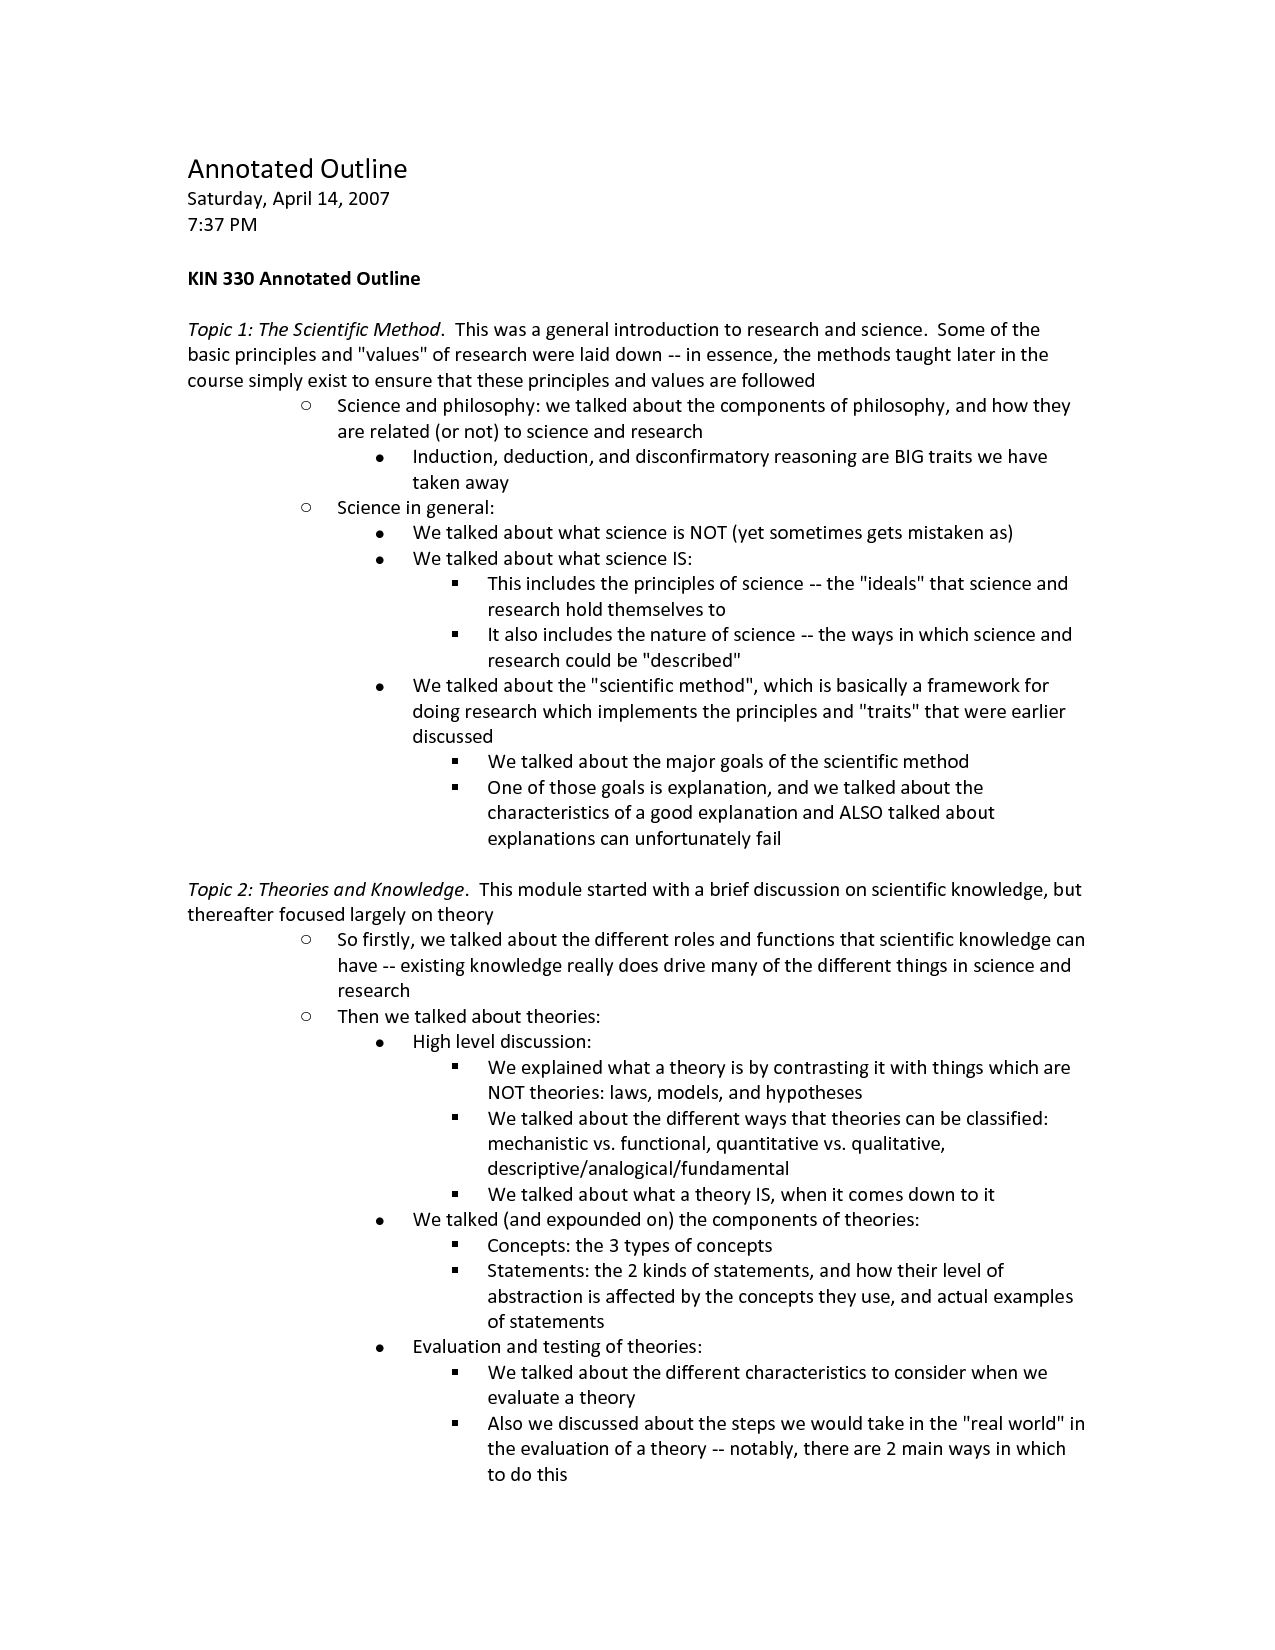 004 How To Write An Apa Outline For Research Paper Annotated 308696 Awful A Style Full